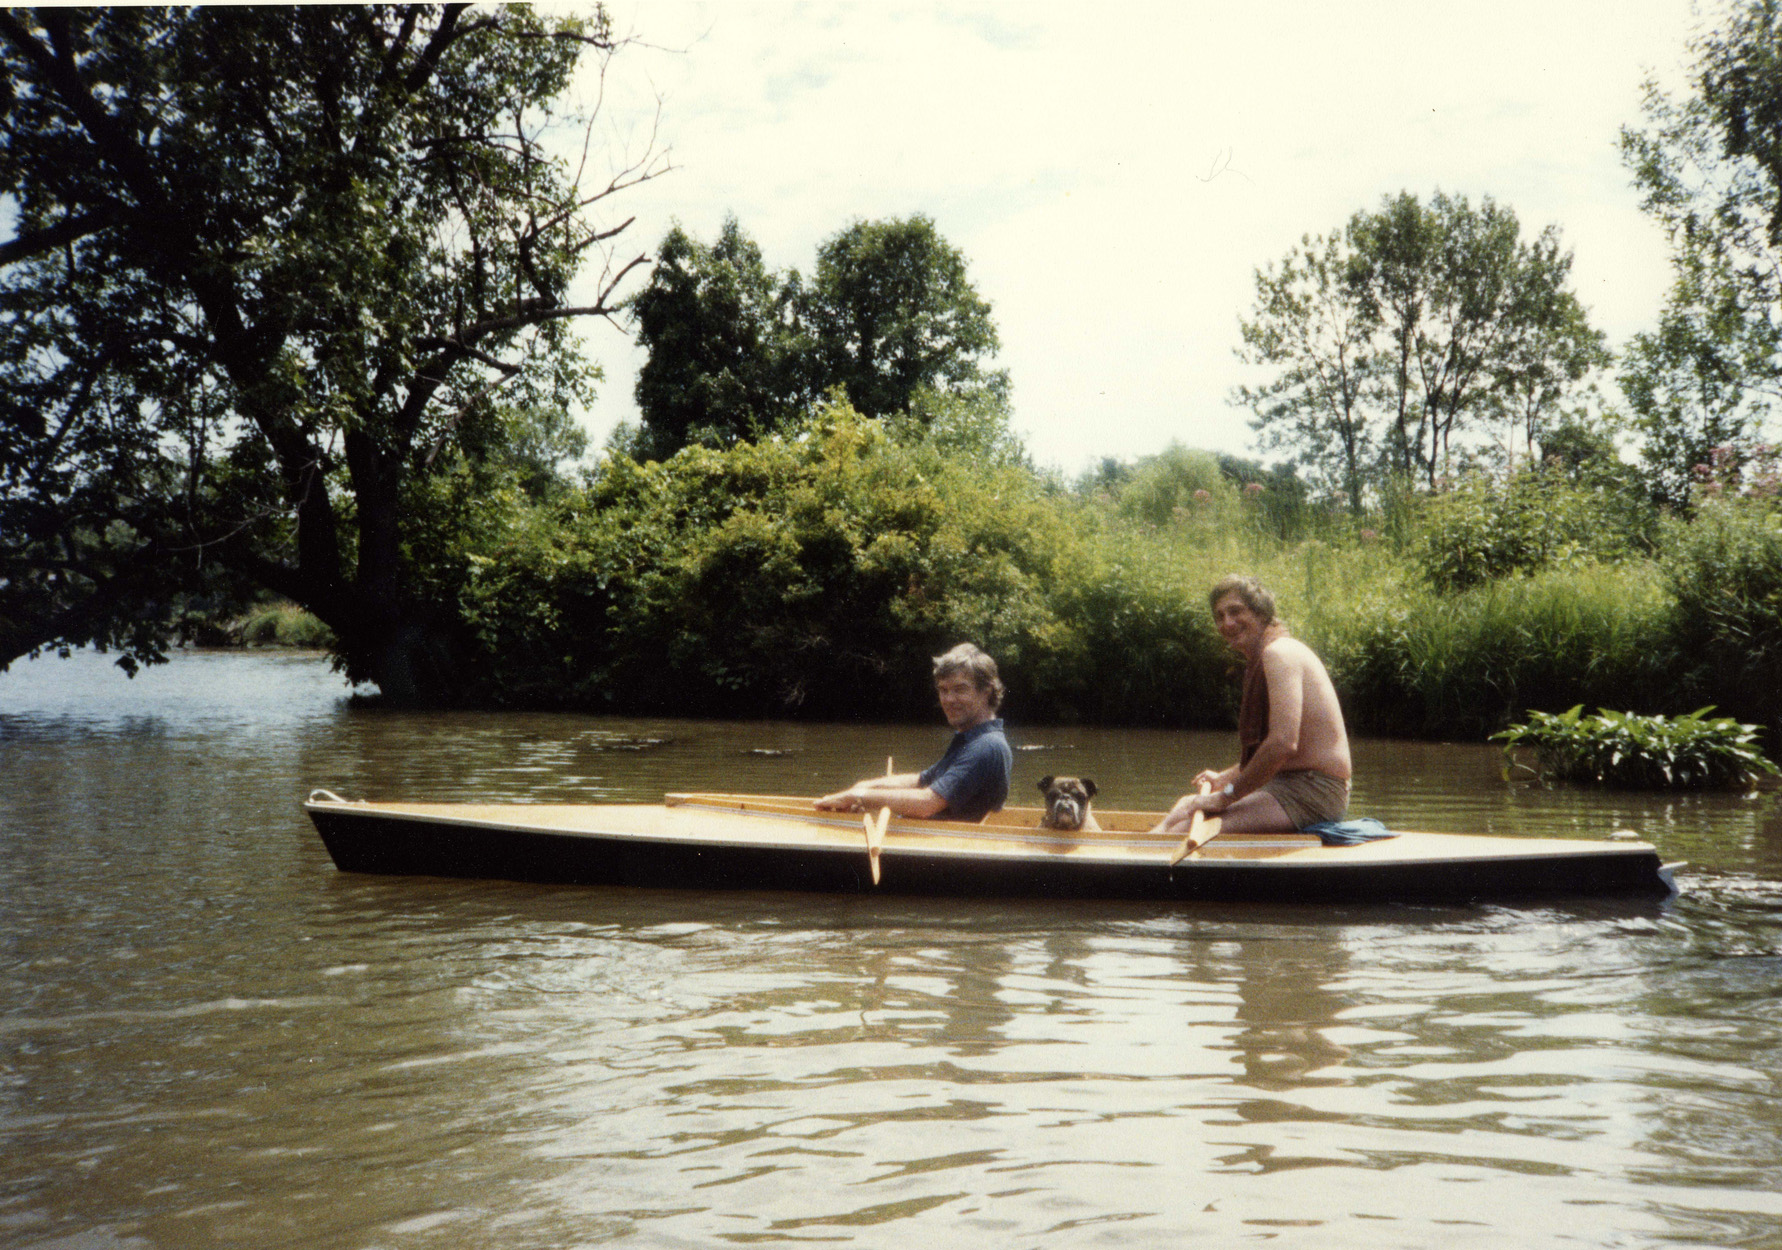 Roger Brown (left) and George Veronda with their dog, Babe, in New Buffalo, Michigan, c. 1982. Photographer unknown.